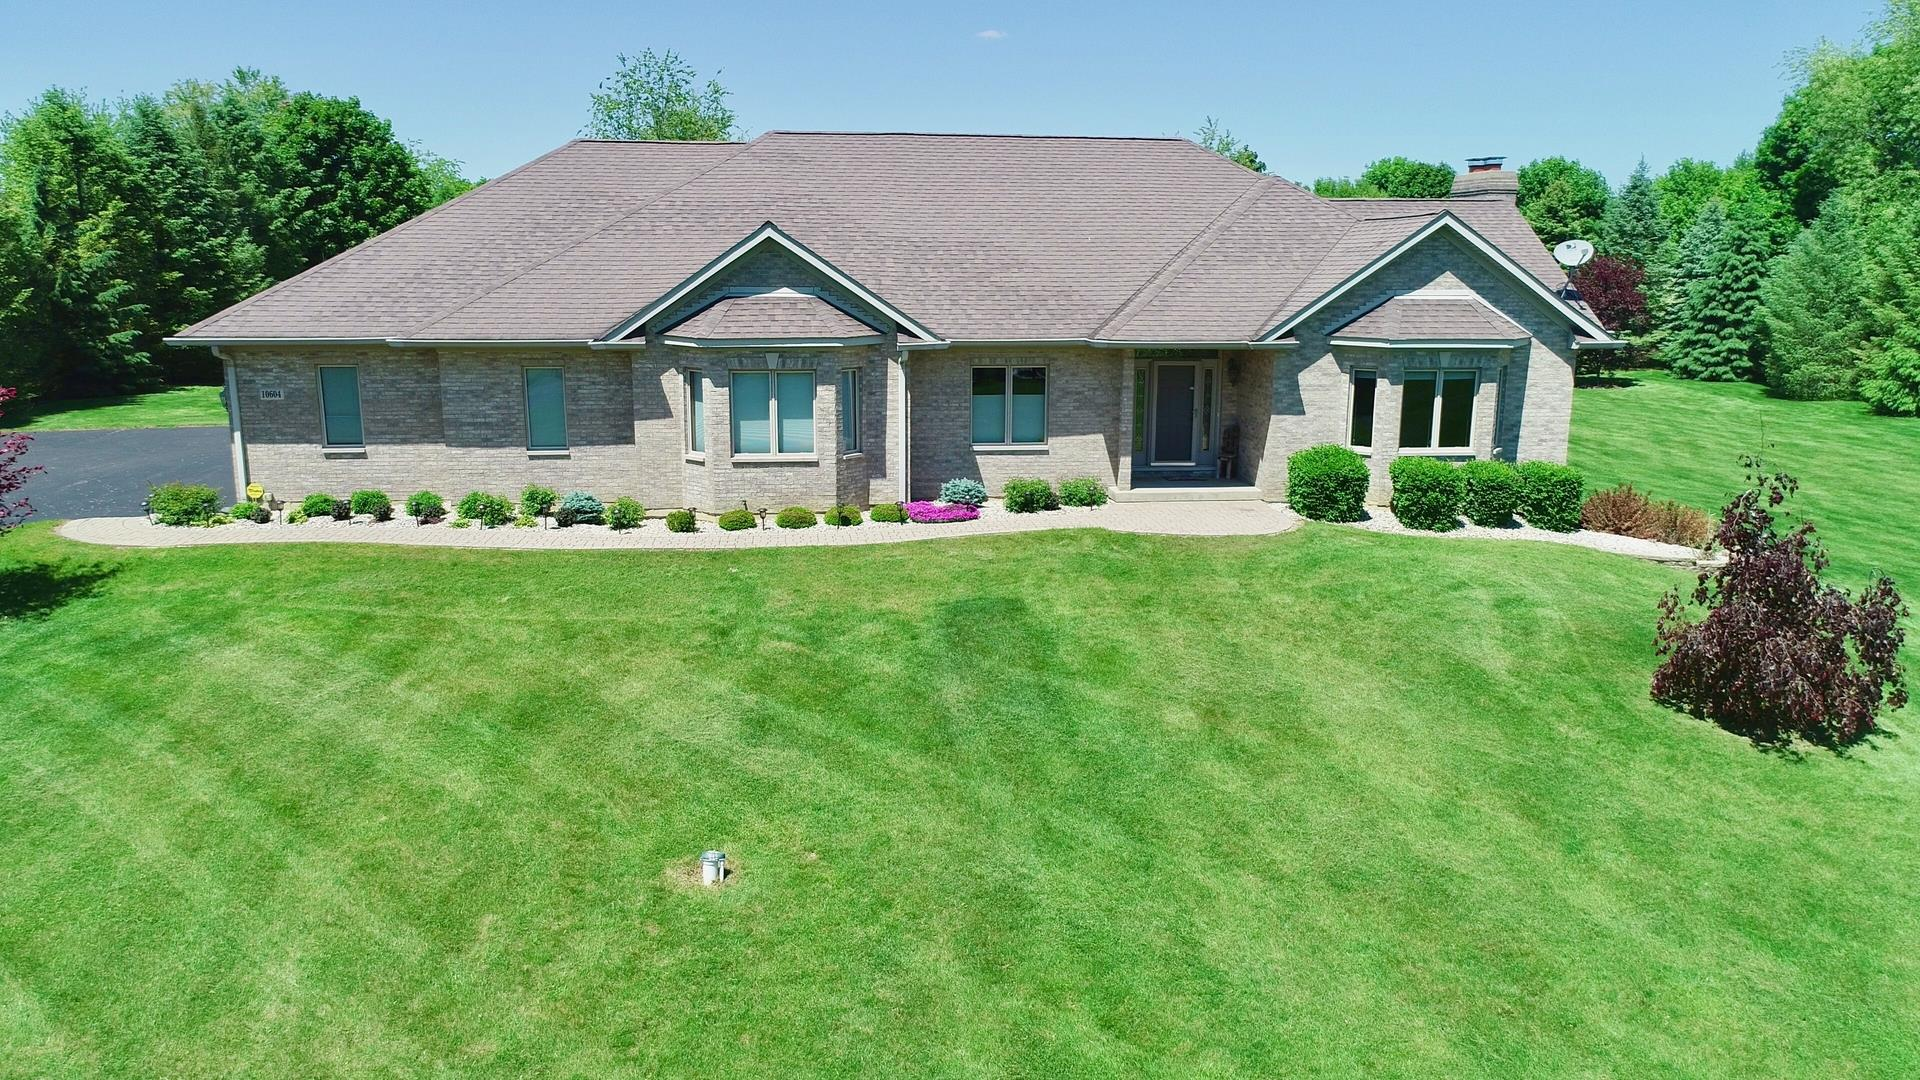 10604 Happy Trail, Woodstock, IL 60098 - #: 10652551